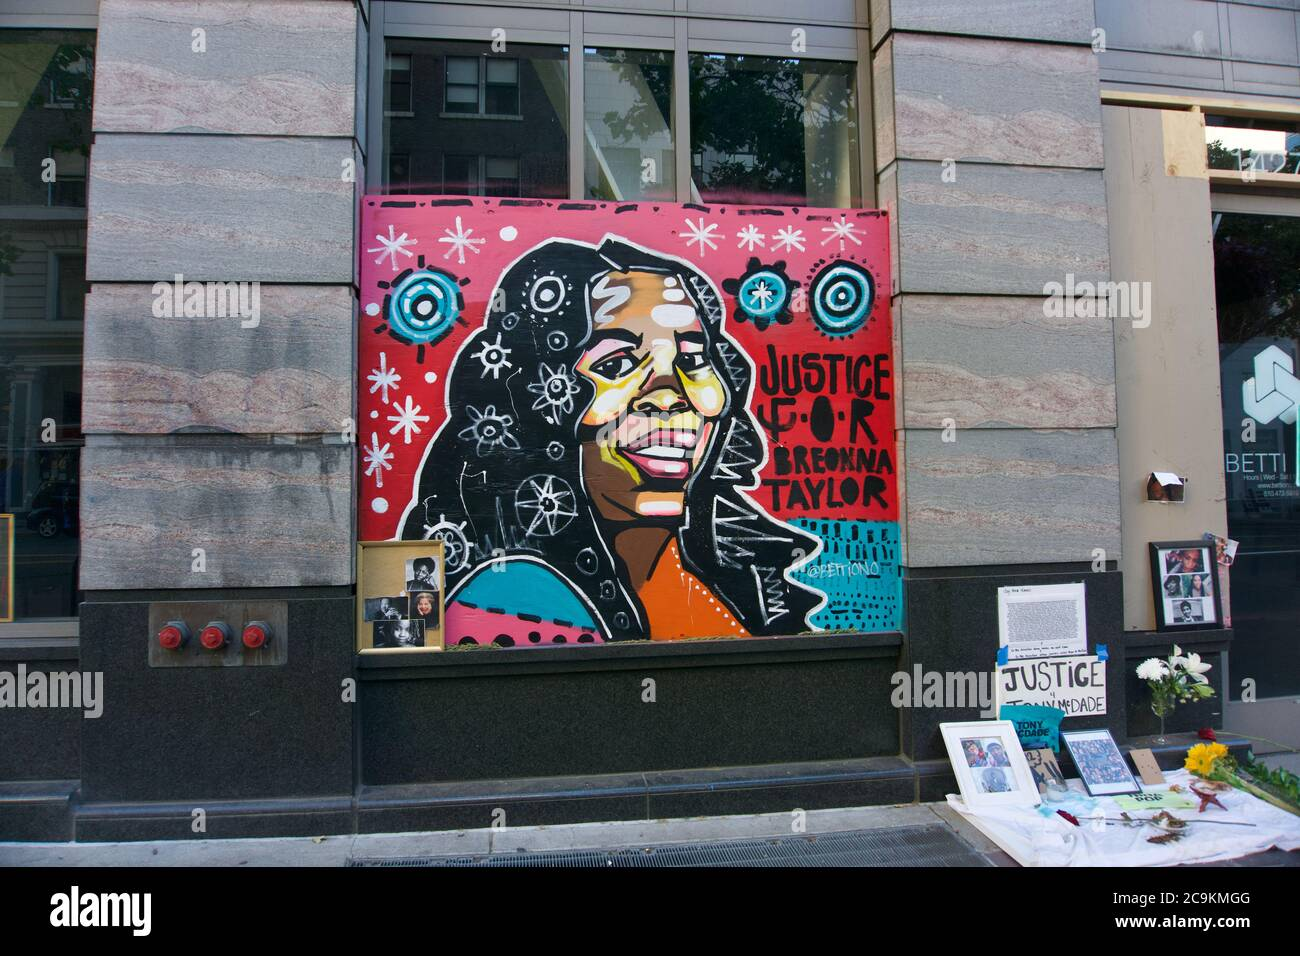 Black Lives Matter mural and memorial shrine to Breonna Taylor who was  killed from police brutality. Oakland, CA, USA Stock Photo